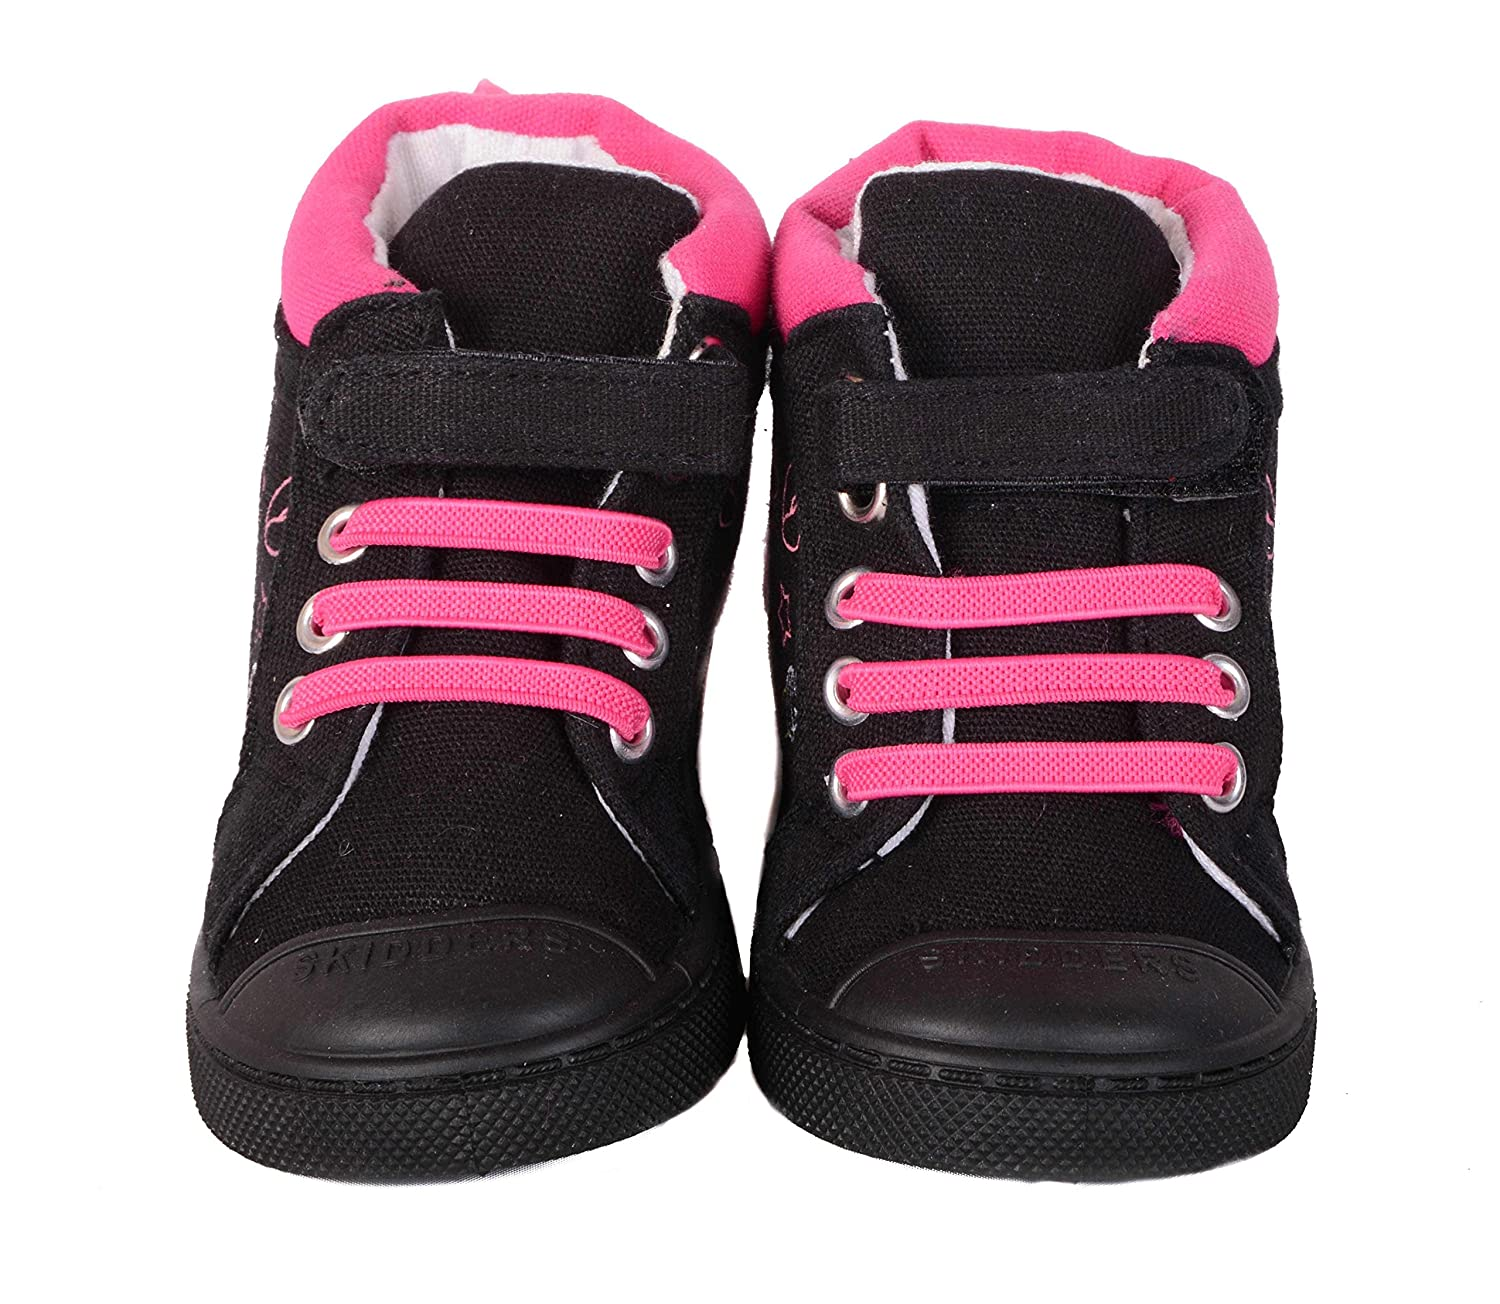 SKIDDERS Baby Toddler Girls High Top Canvas Sneakers Style SK1036